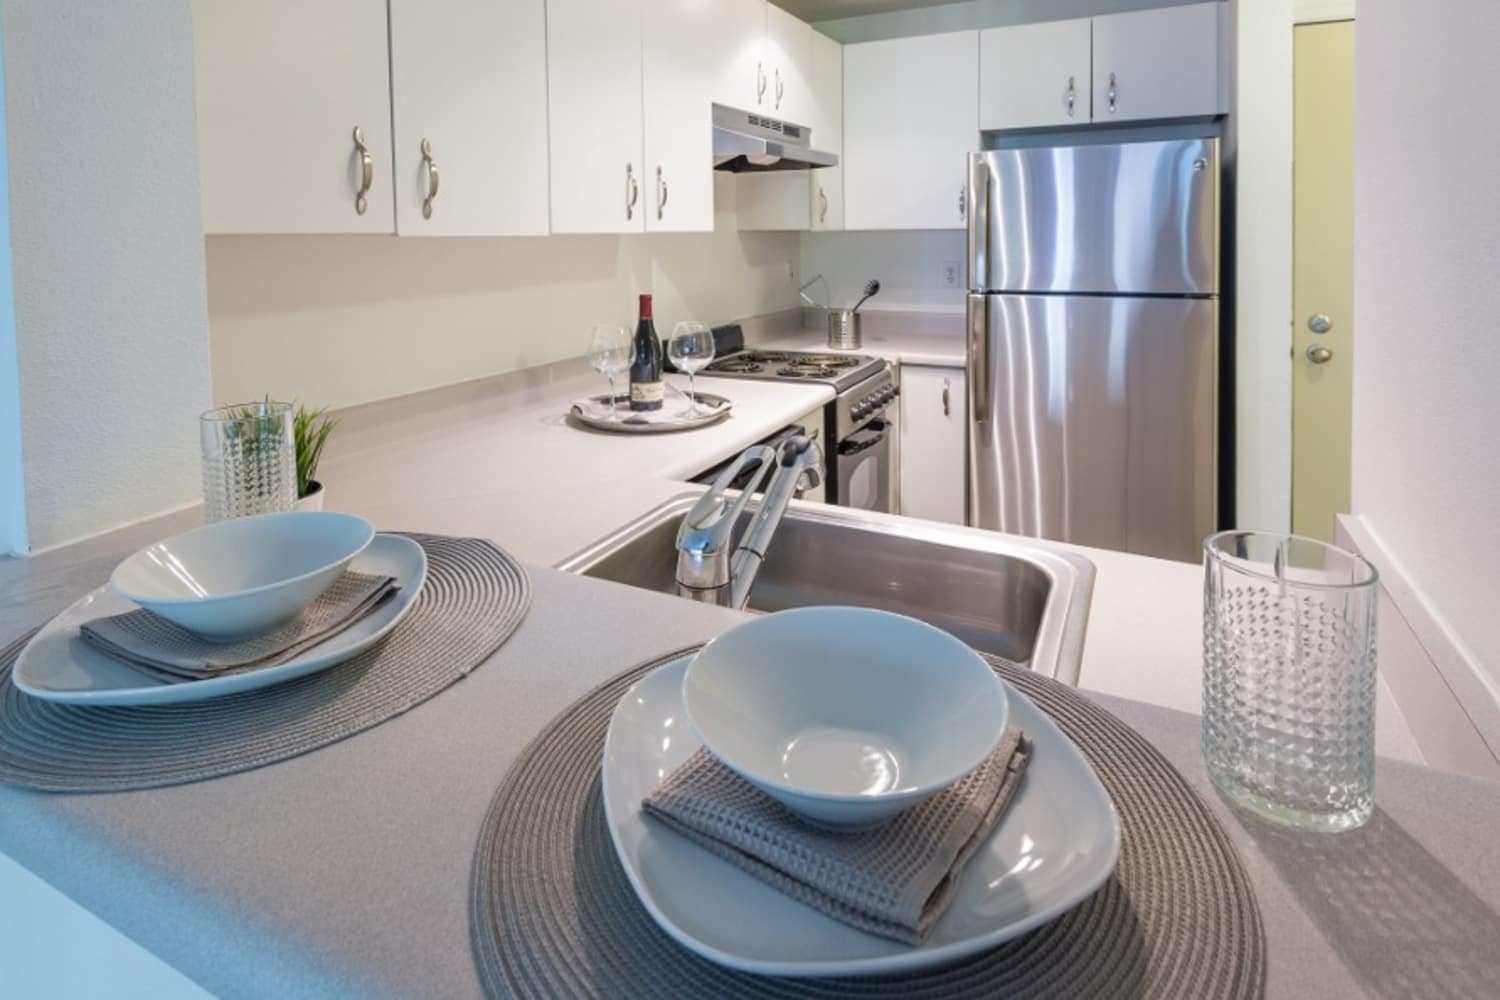 Apartment kitchen at Metropolitan Park Apartments in Seattle, Washington